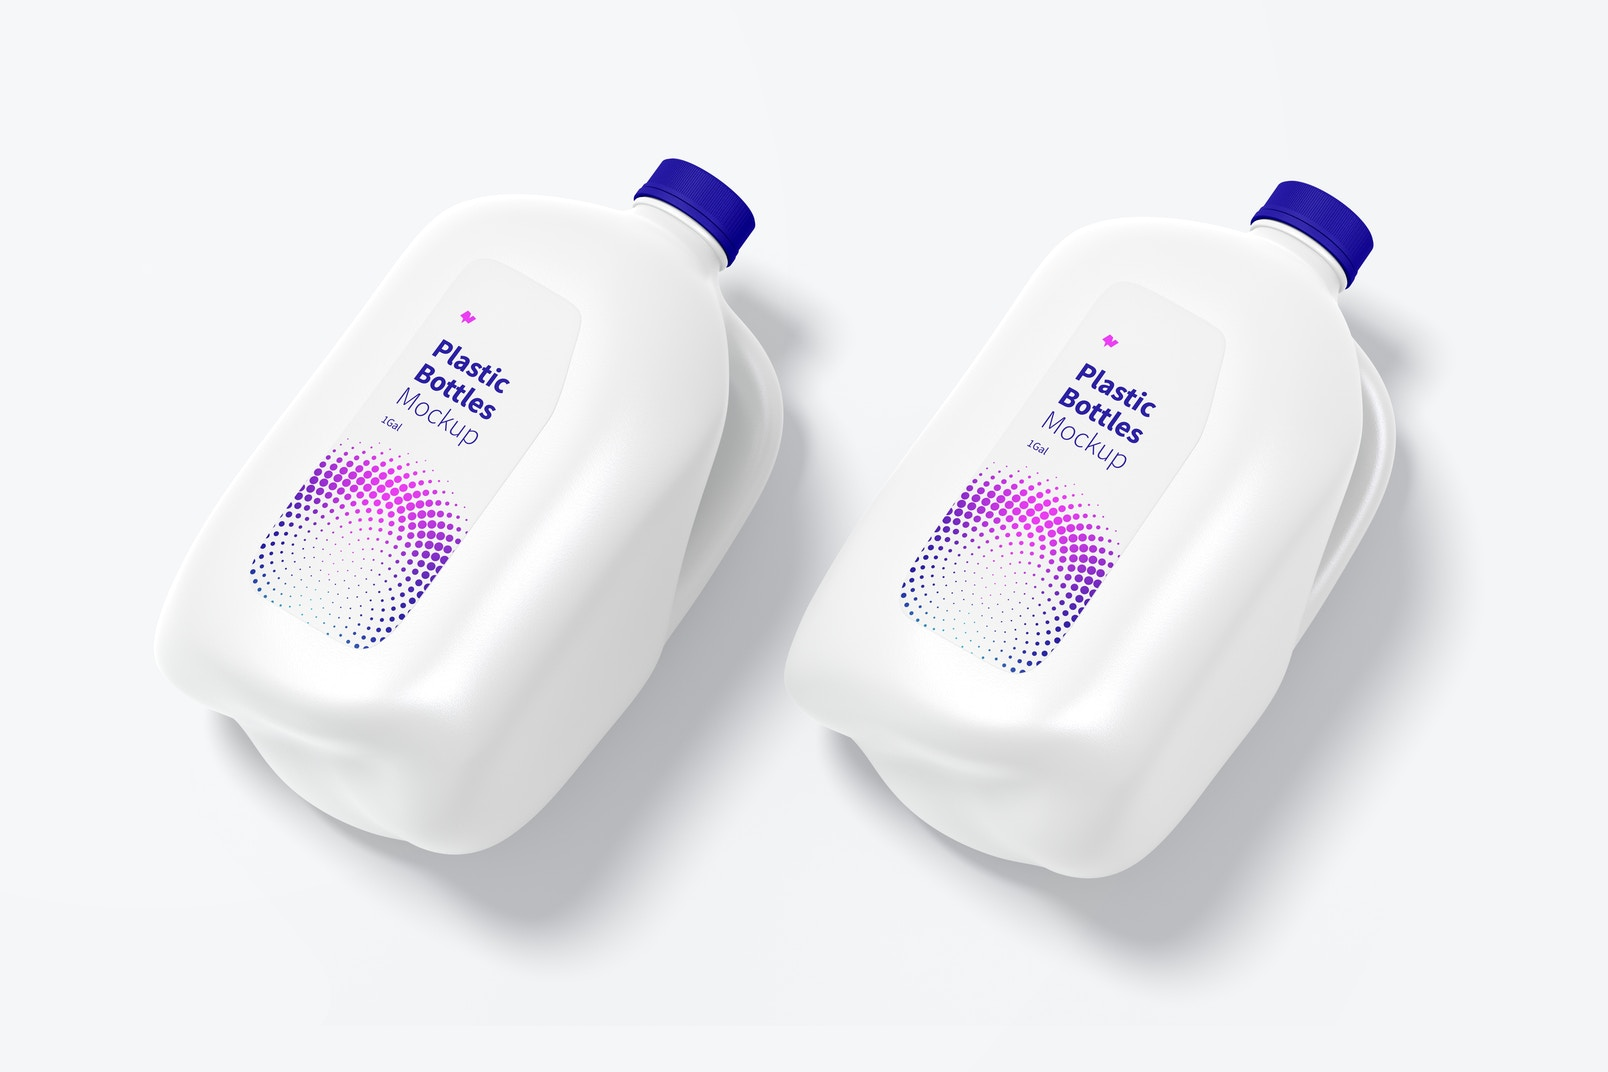 1 gal Plastic Bottles PSD Mockup, Perspective View